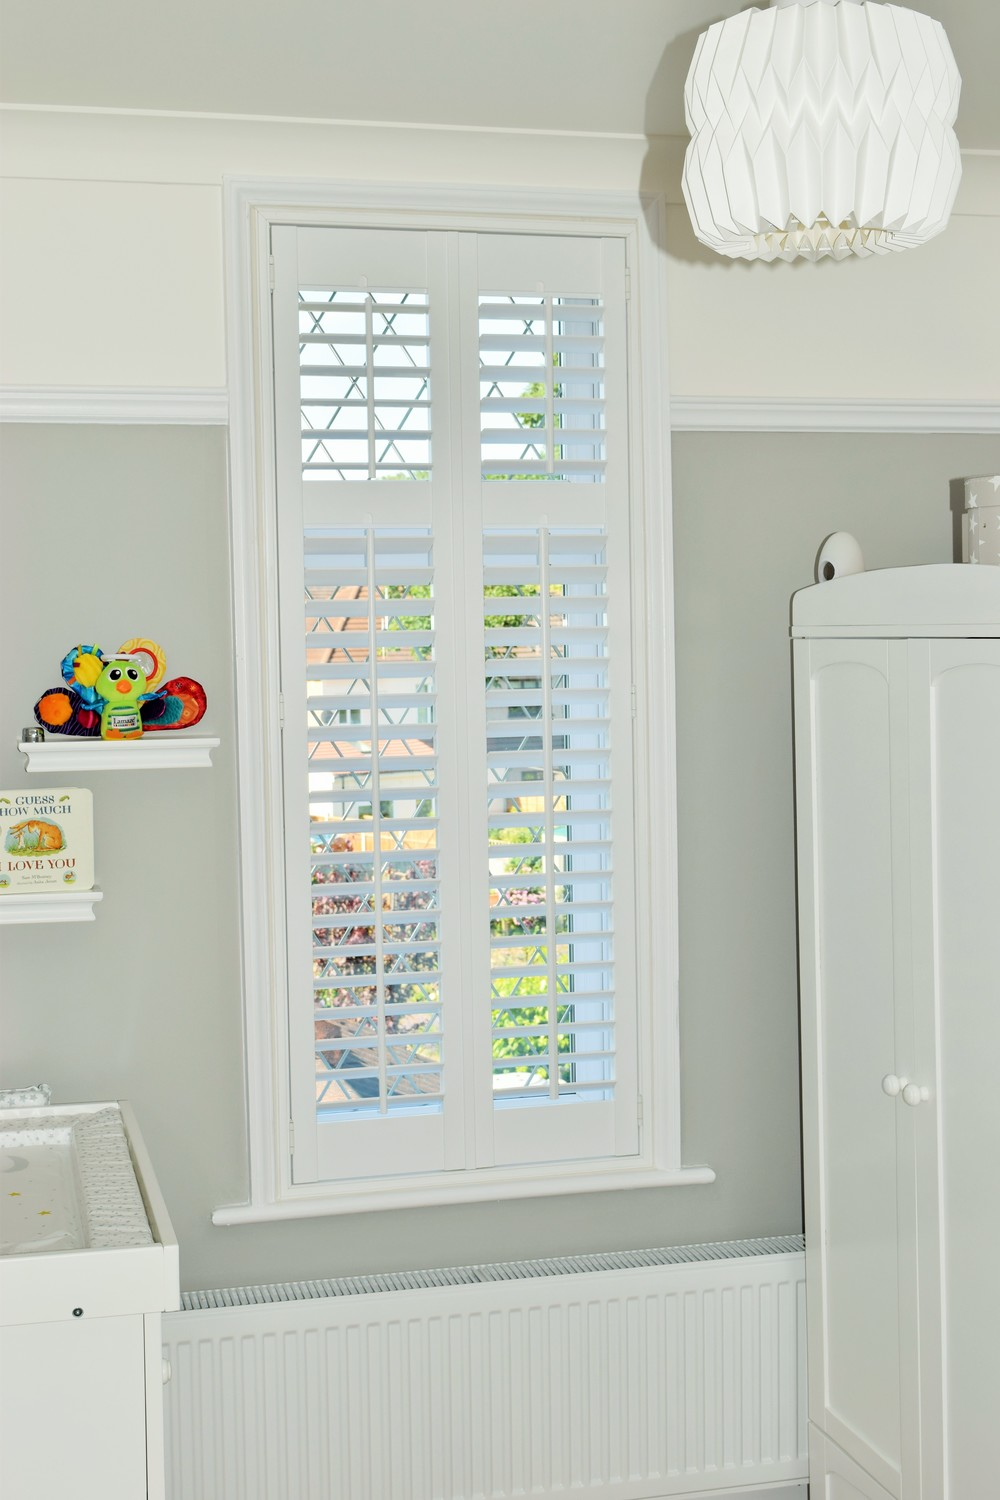 Wooden interior plantation shutters kids room Dorset Hampshire